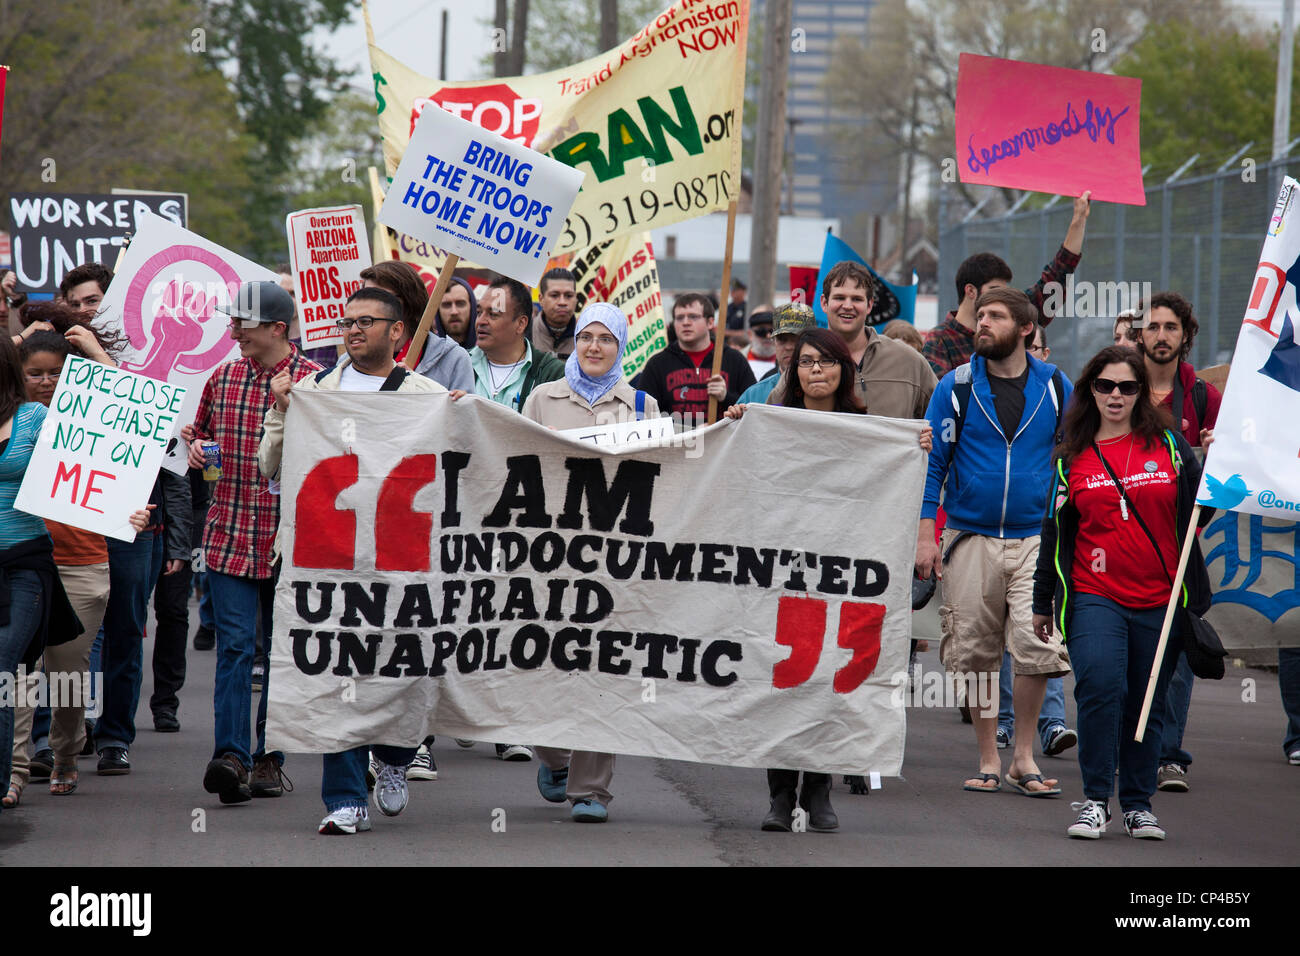 Detroit, Michigan - Immigrant rights activists participate in a May Day march and rally. - Stock Image